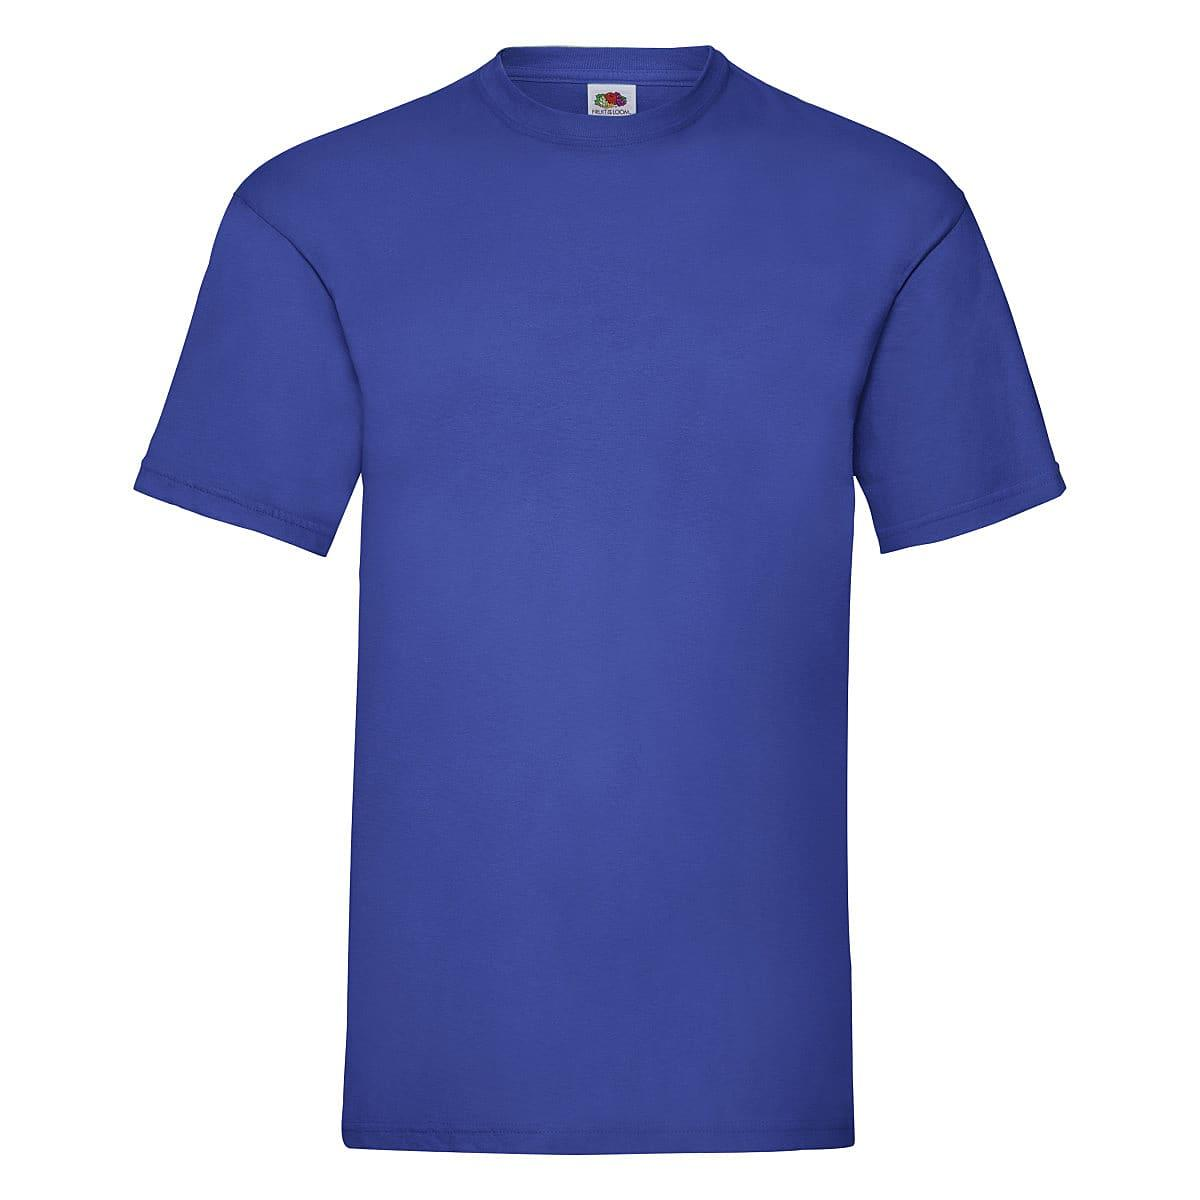 Fruit Of The Loom Valueweight T-Shirt in Royal Blue (Product Code: 61036)